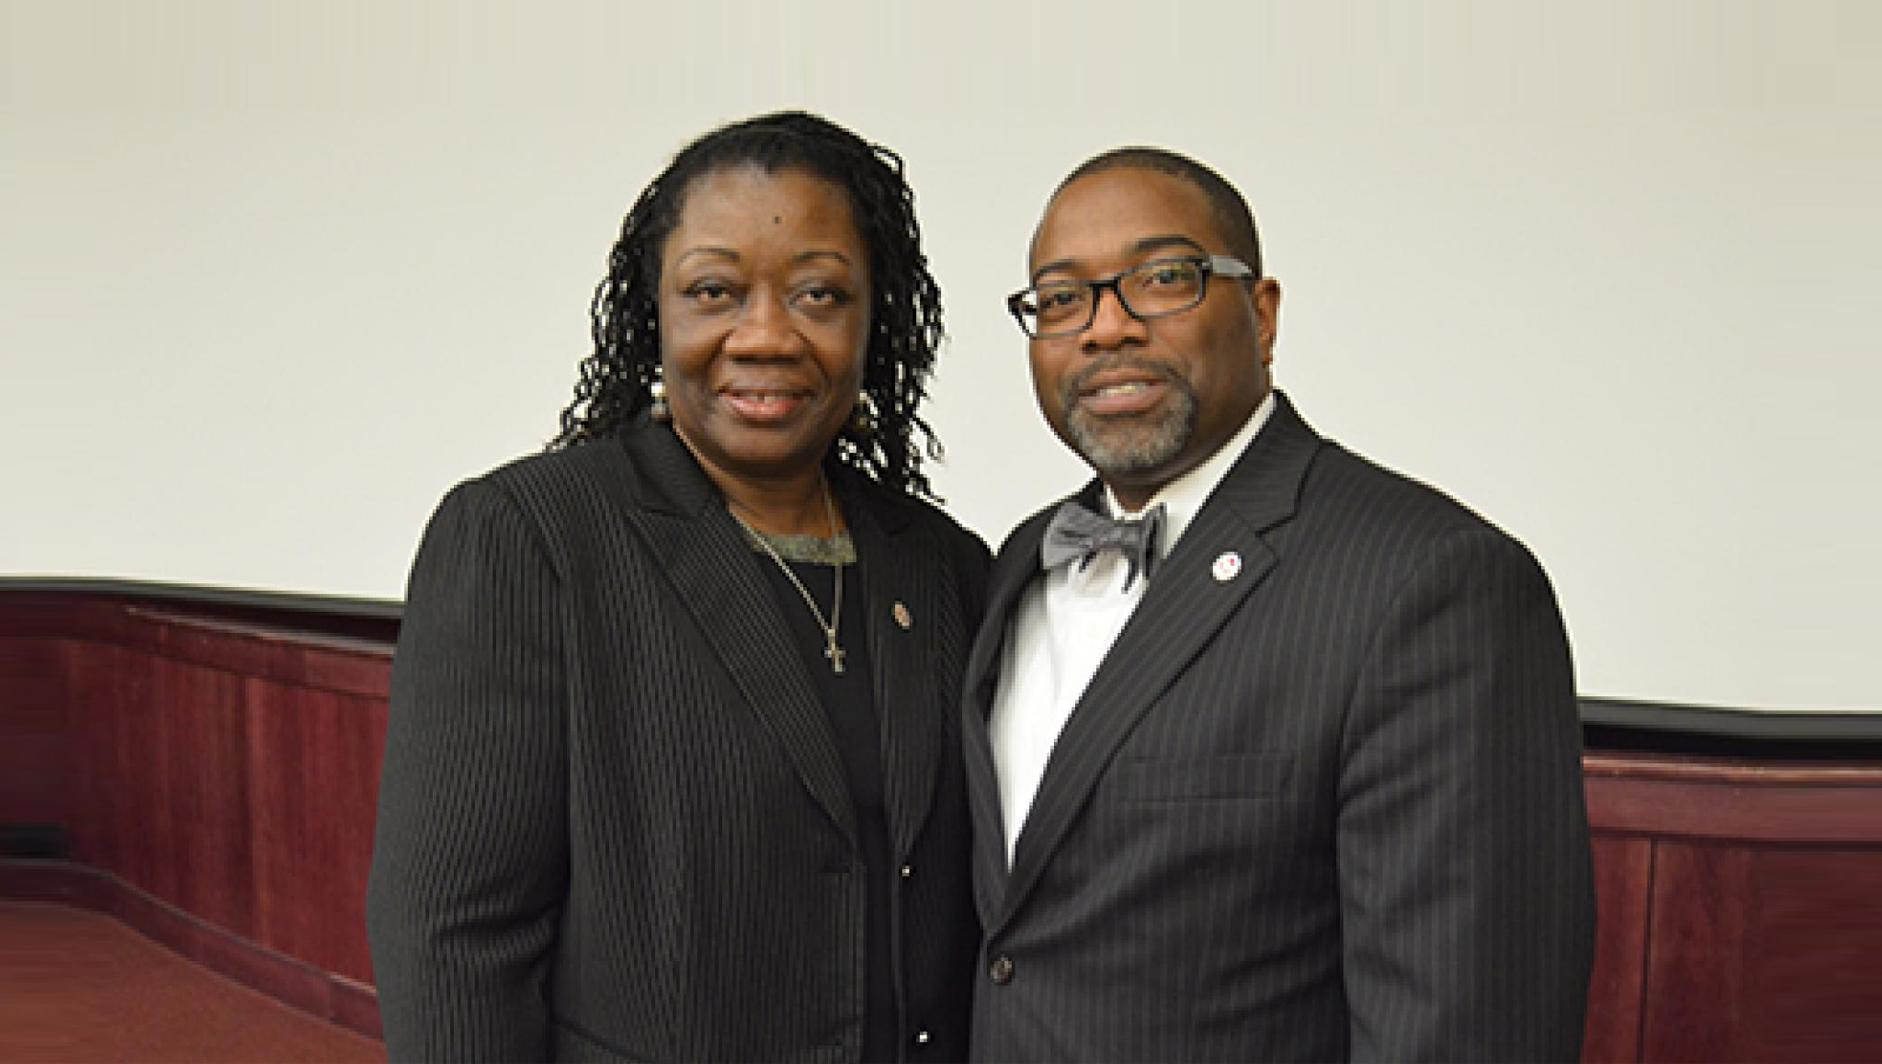 At left, Elsie Wallace Smalls and Calvin R. Hill, PhD, vice president for inclusion and community engagement at Springfield College.